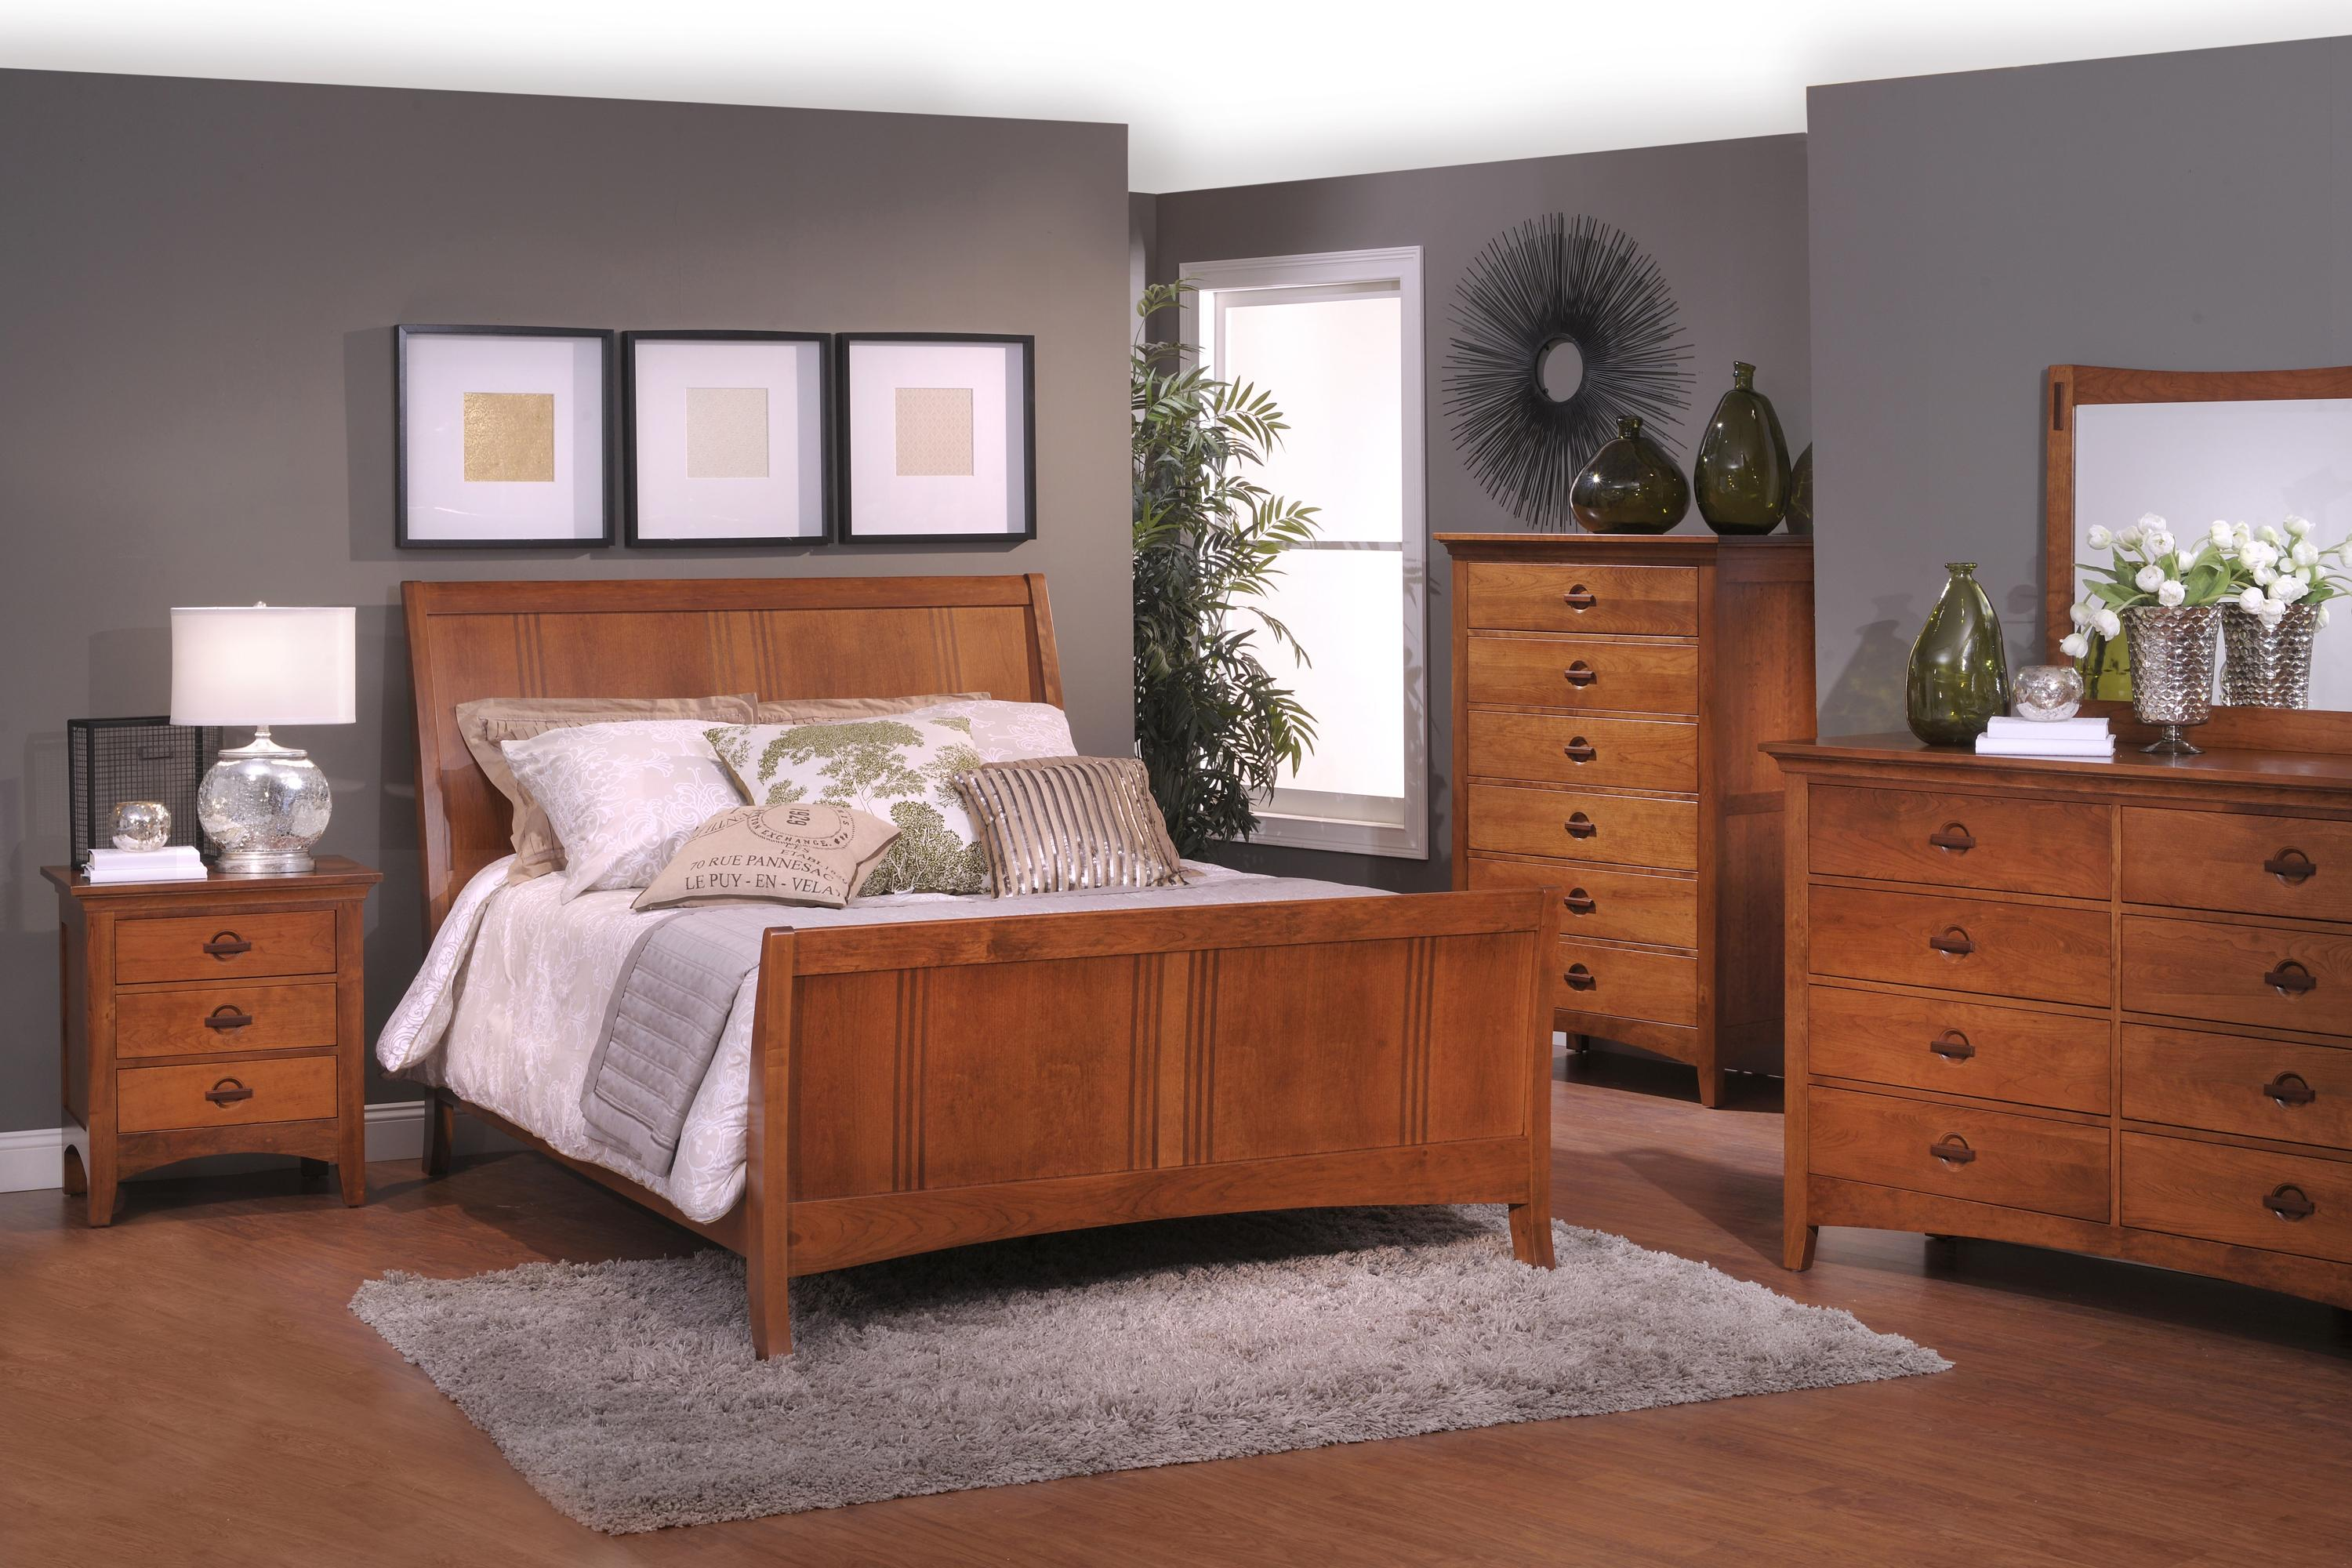 Great Lakes C King S Bed Group 4 by Country View Woodworking at Mueller Furniture